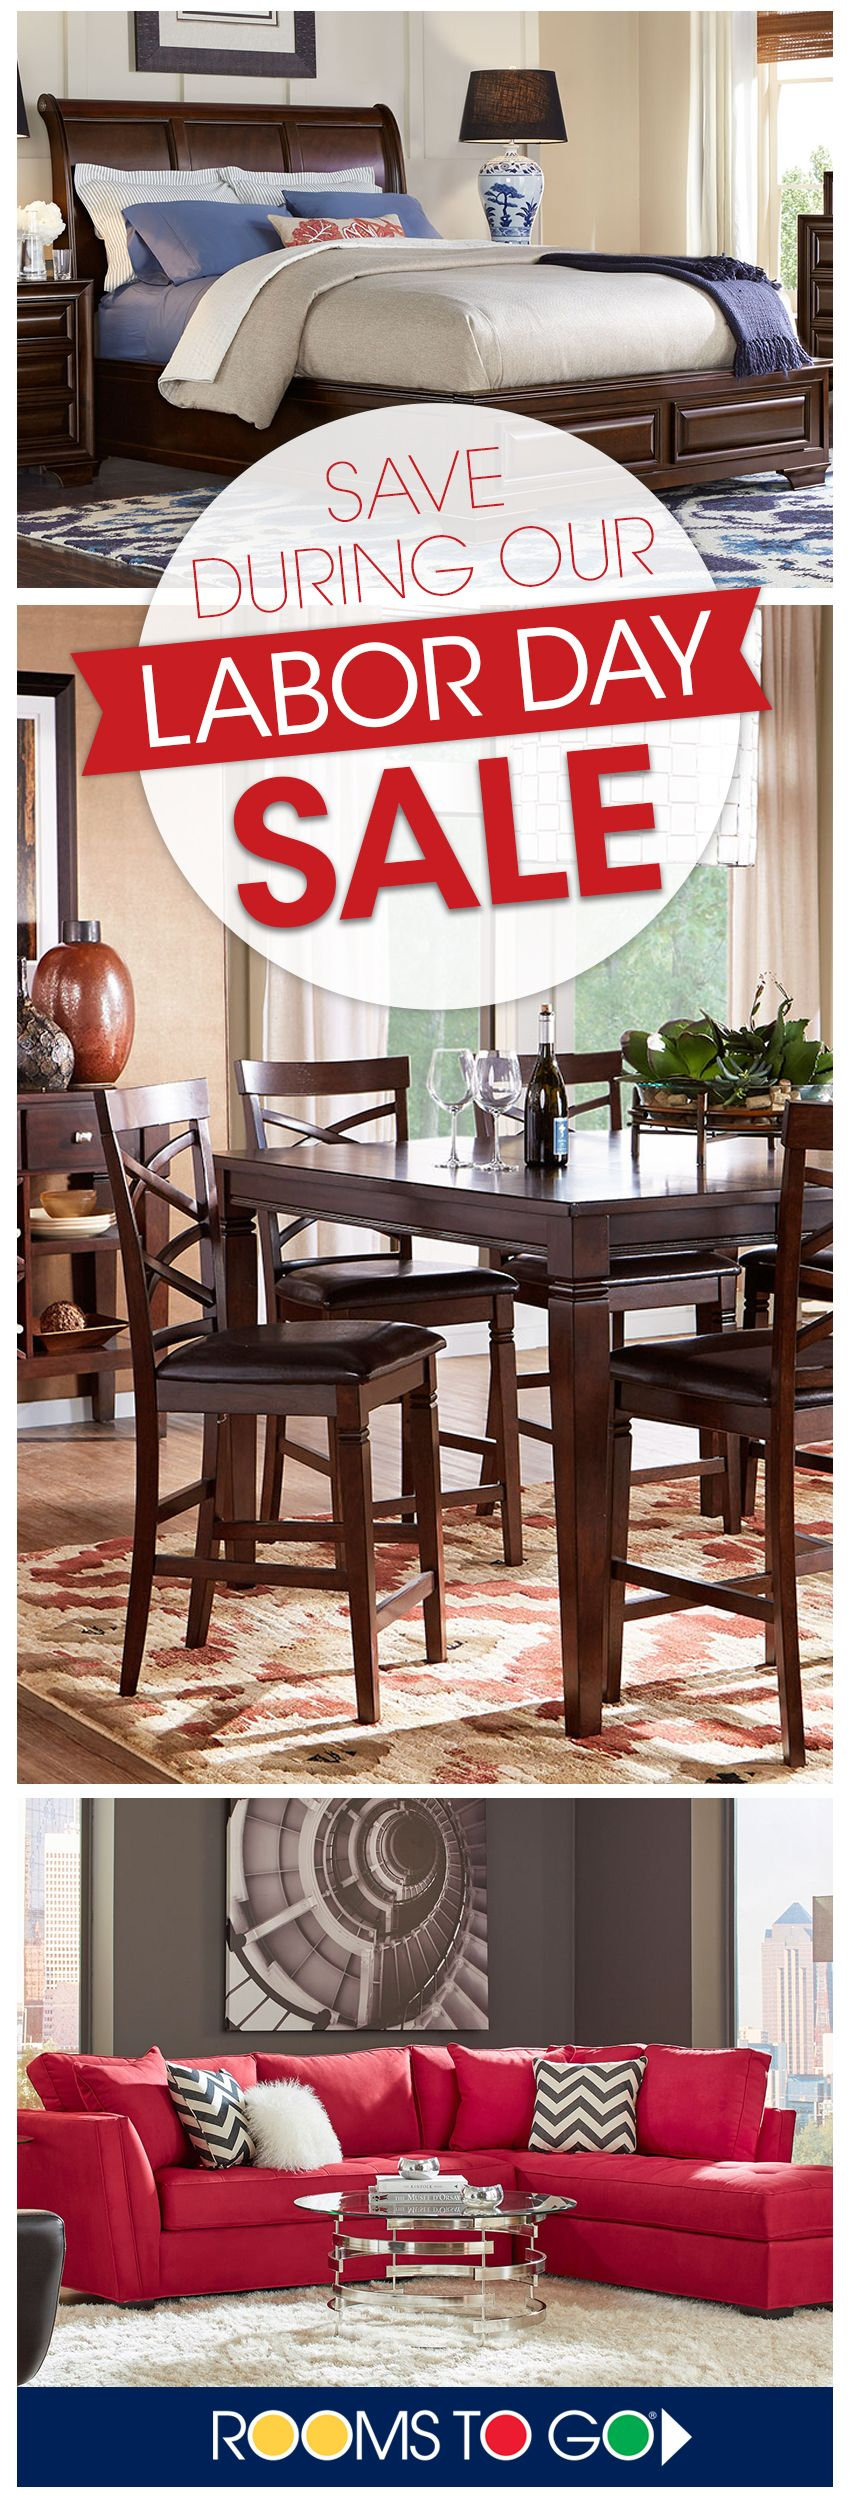 Visit Rooms To Go Now During Our Labor Day Sale And Save On Our